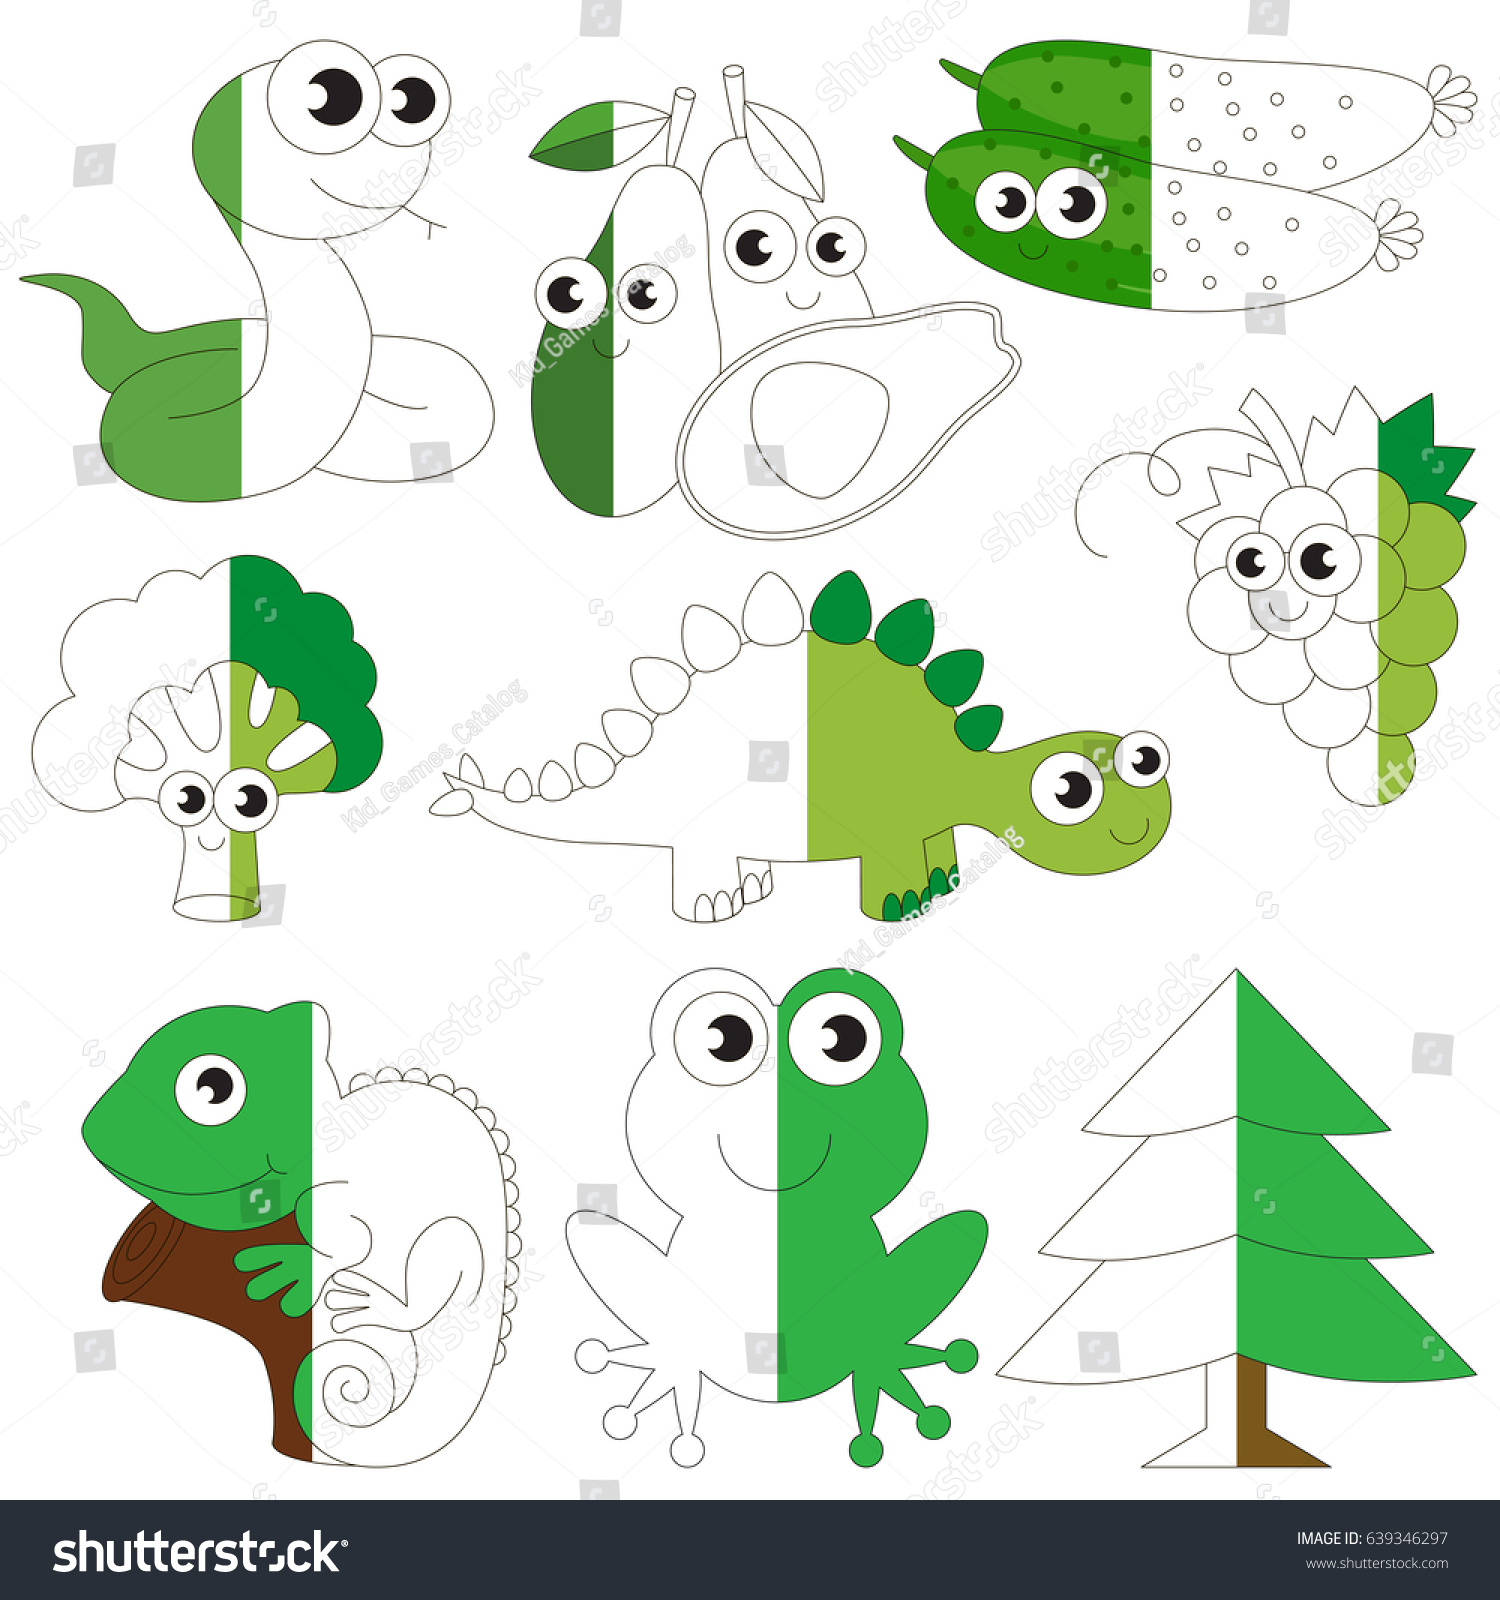 Funny Green Color Animals Fruits Vegetables Stock Photo (Photo ...